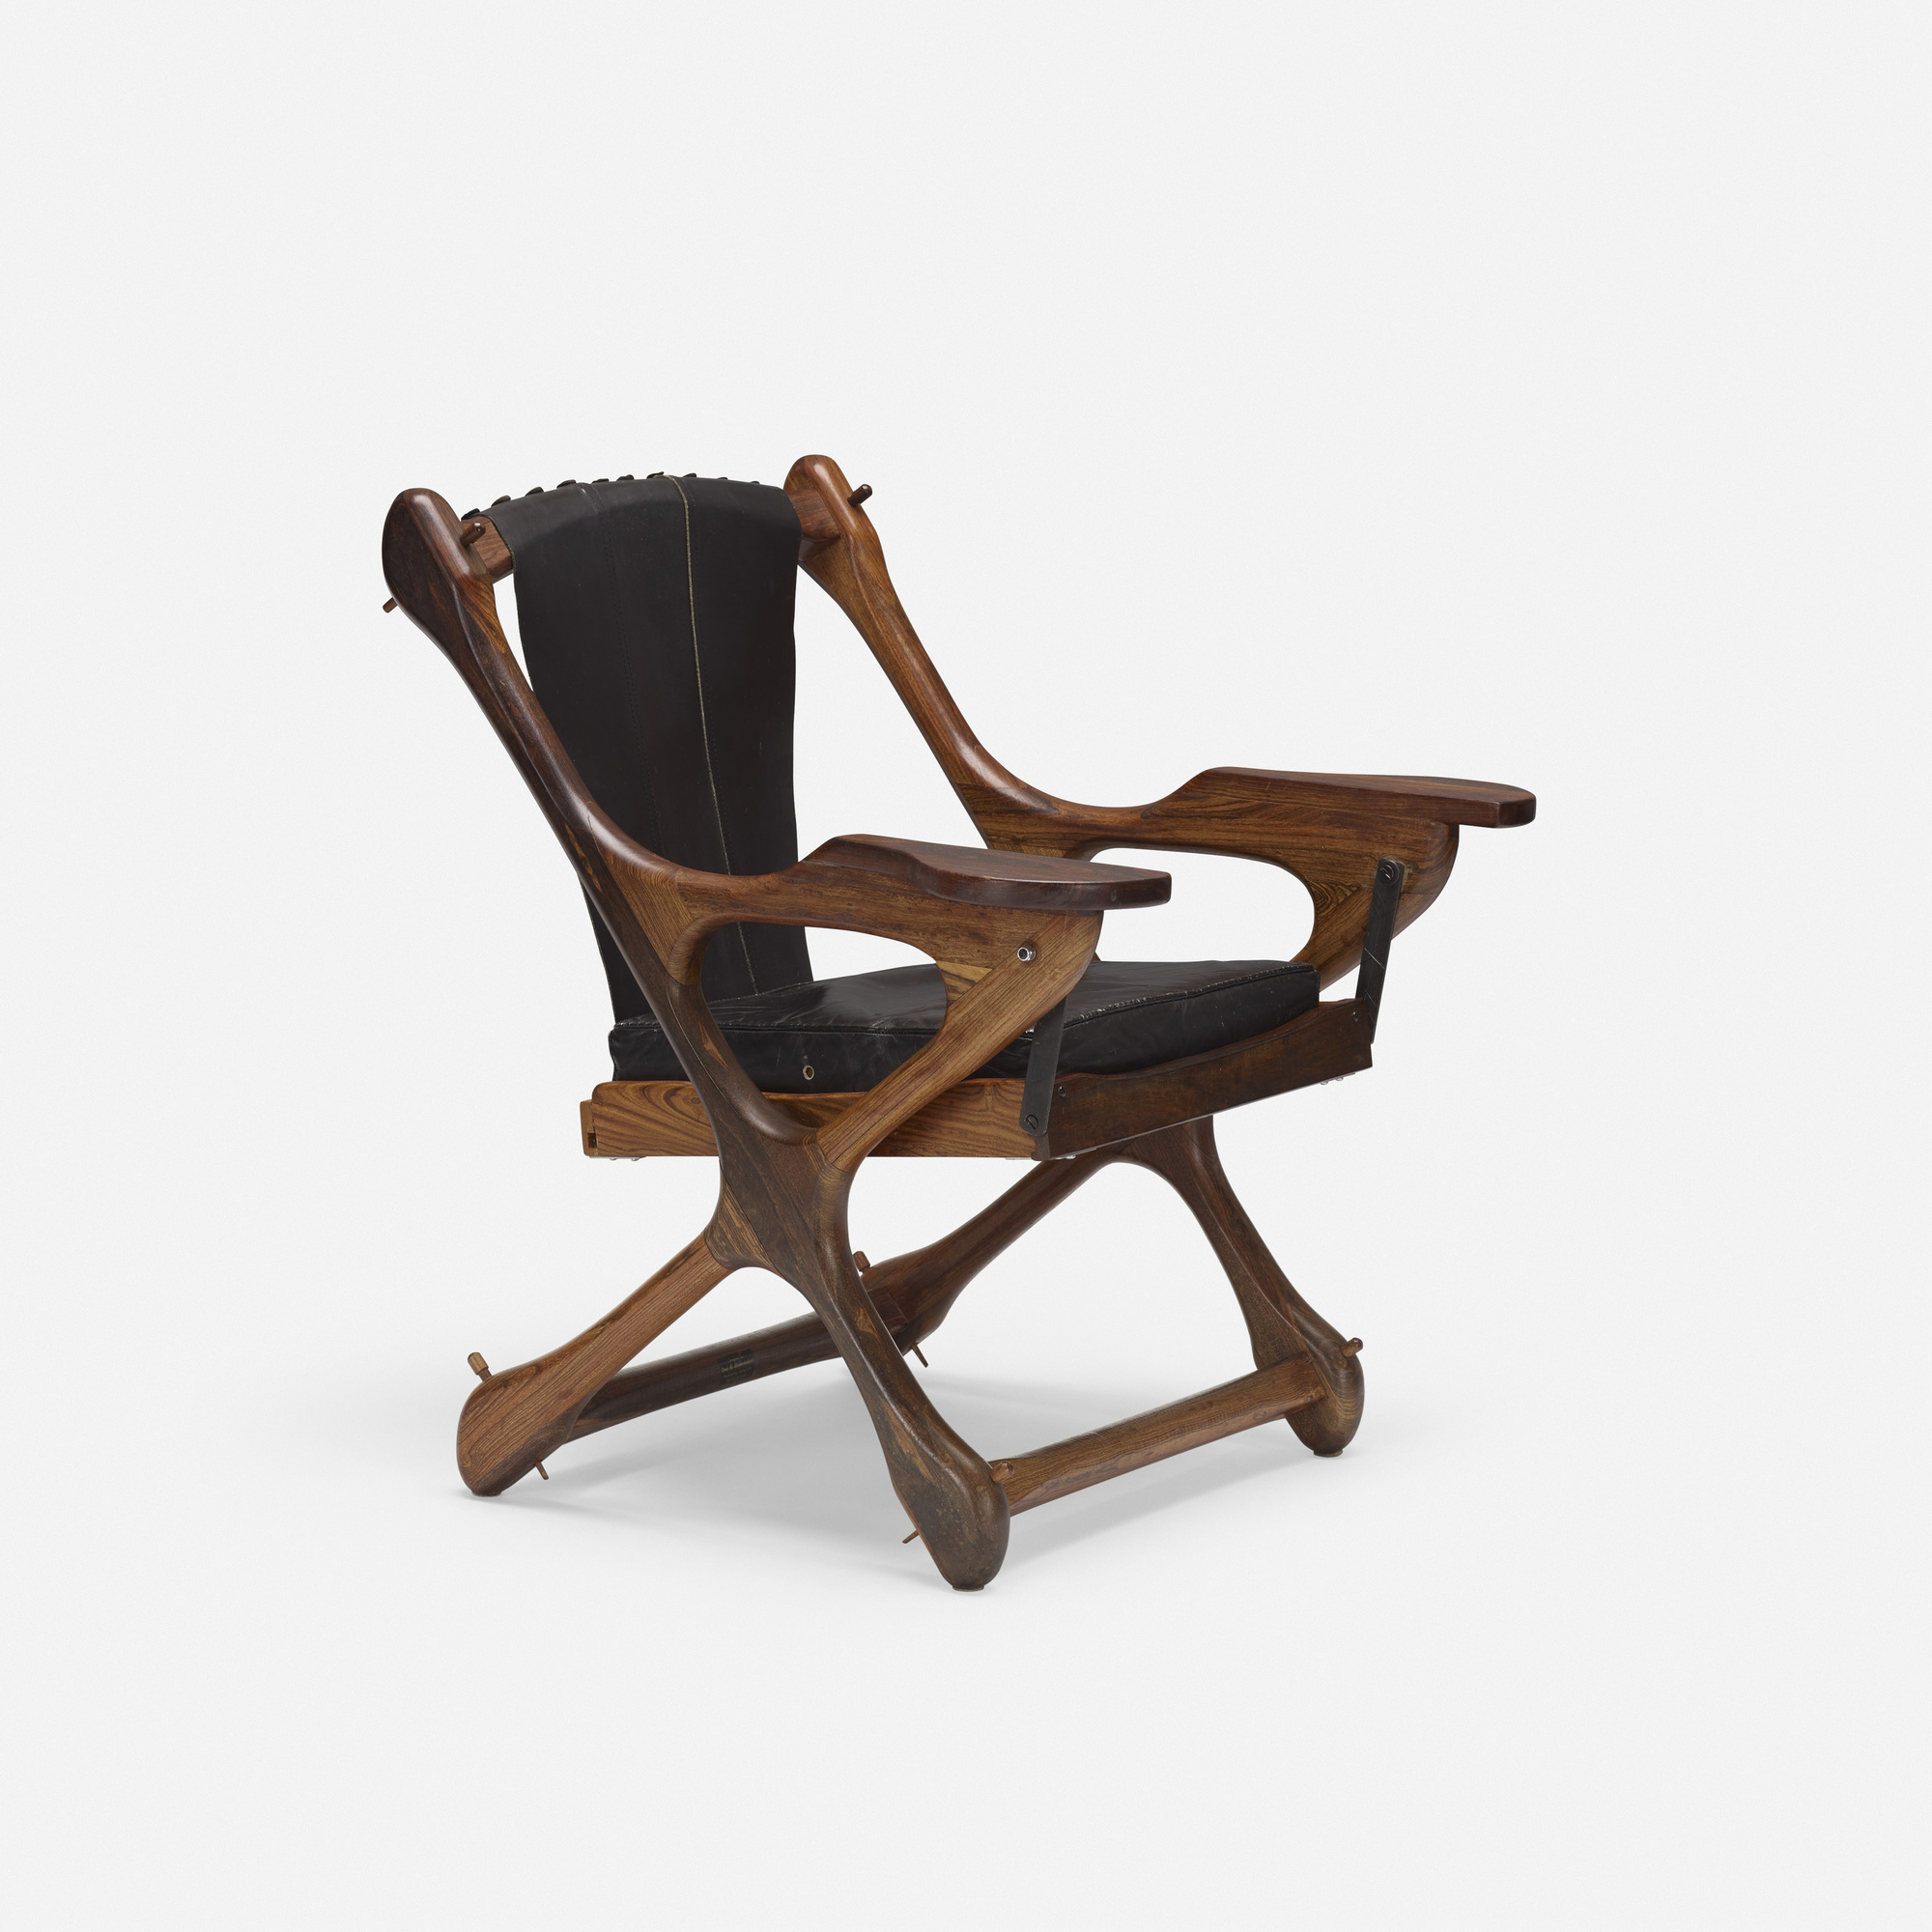 730: Don Shoemaker / lounge chair (1 of 4)